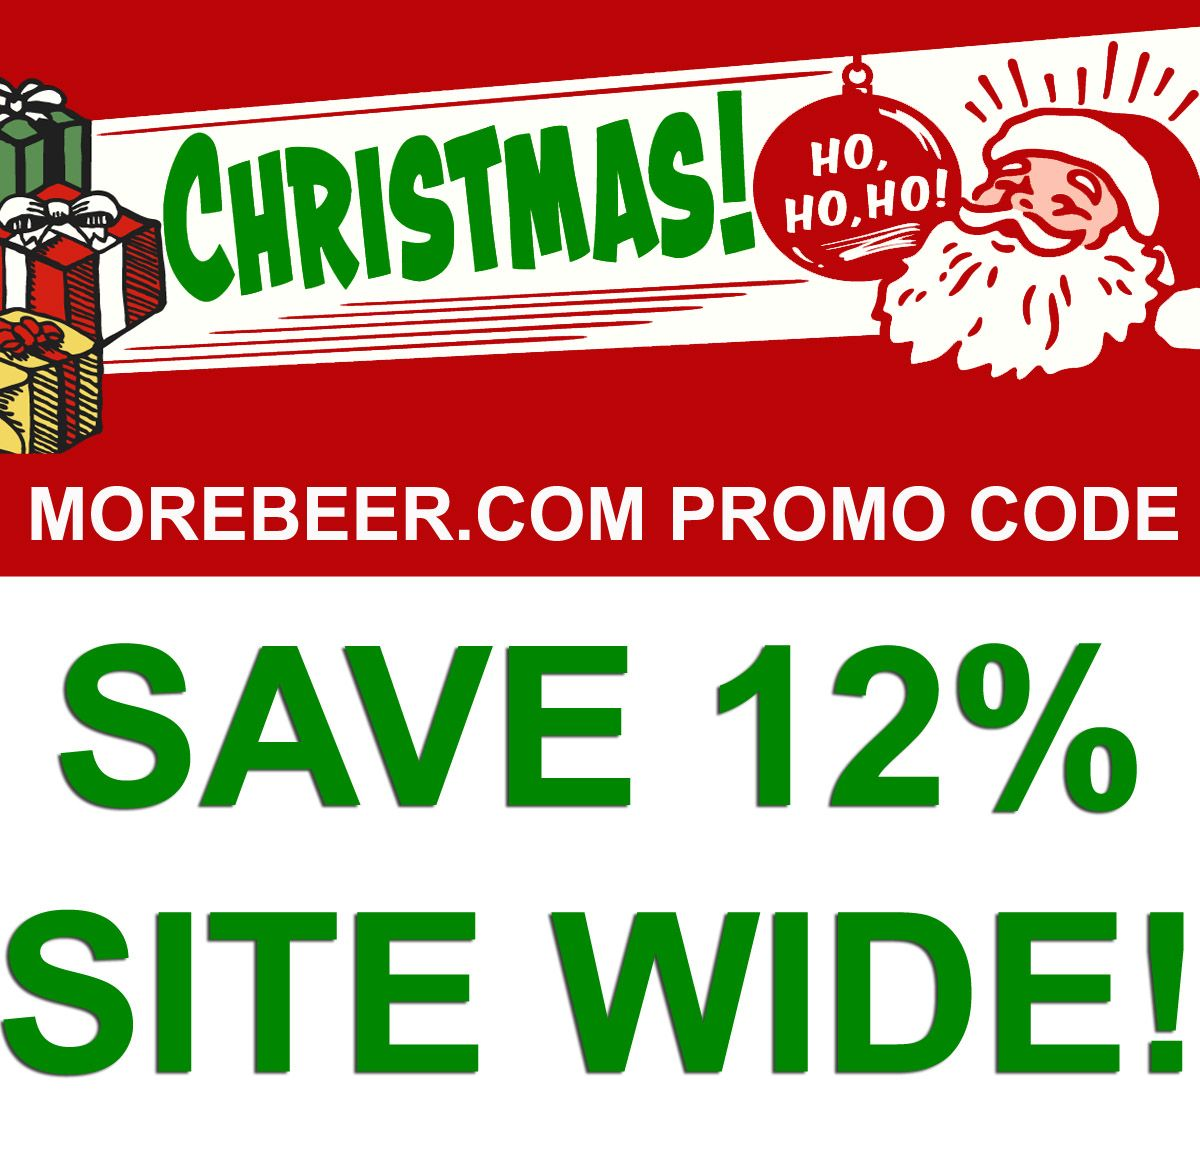 Save 12 Site Wide At Morebeer Com With Promo Code Holiday Promotions Promo Codes Beer Promotion